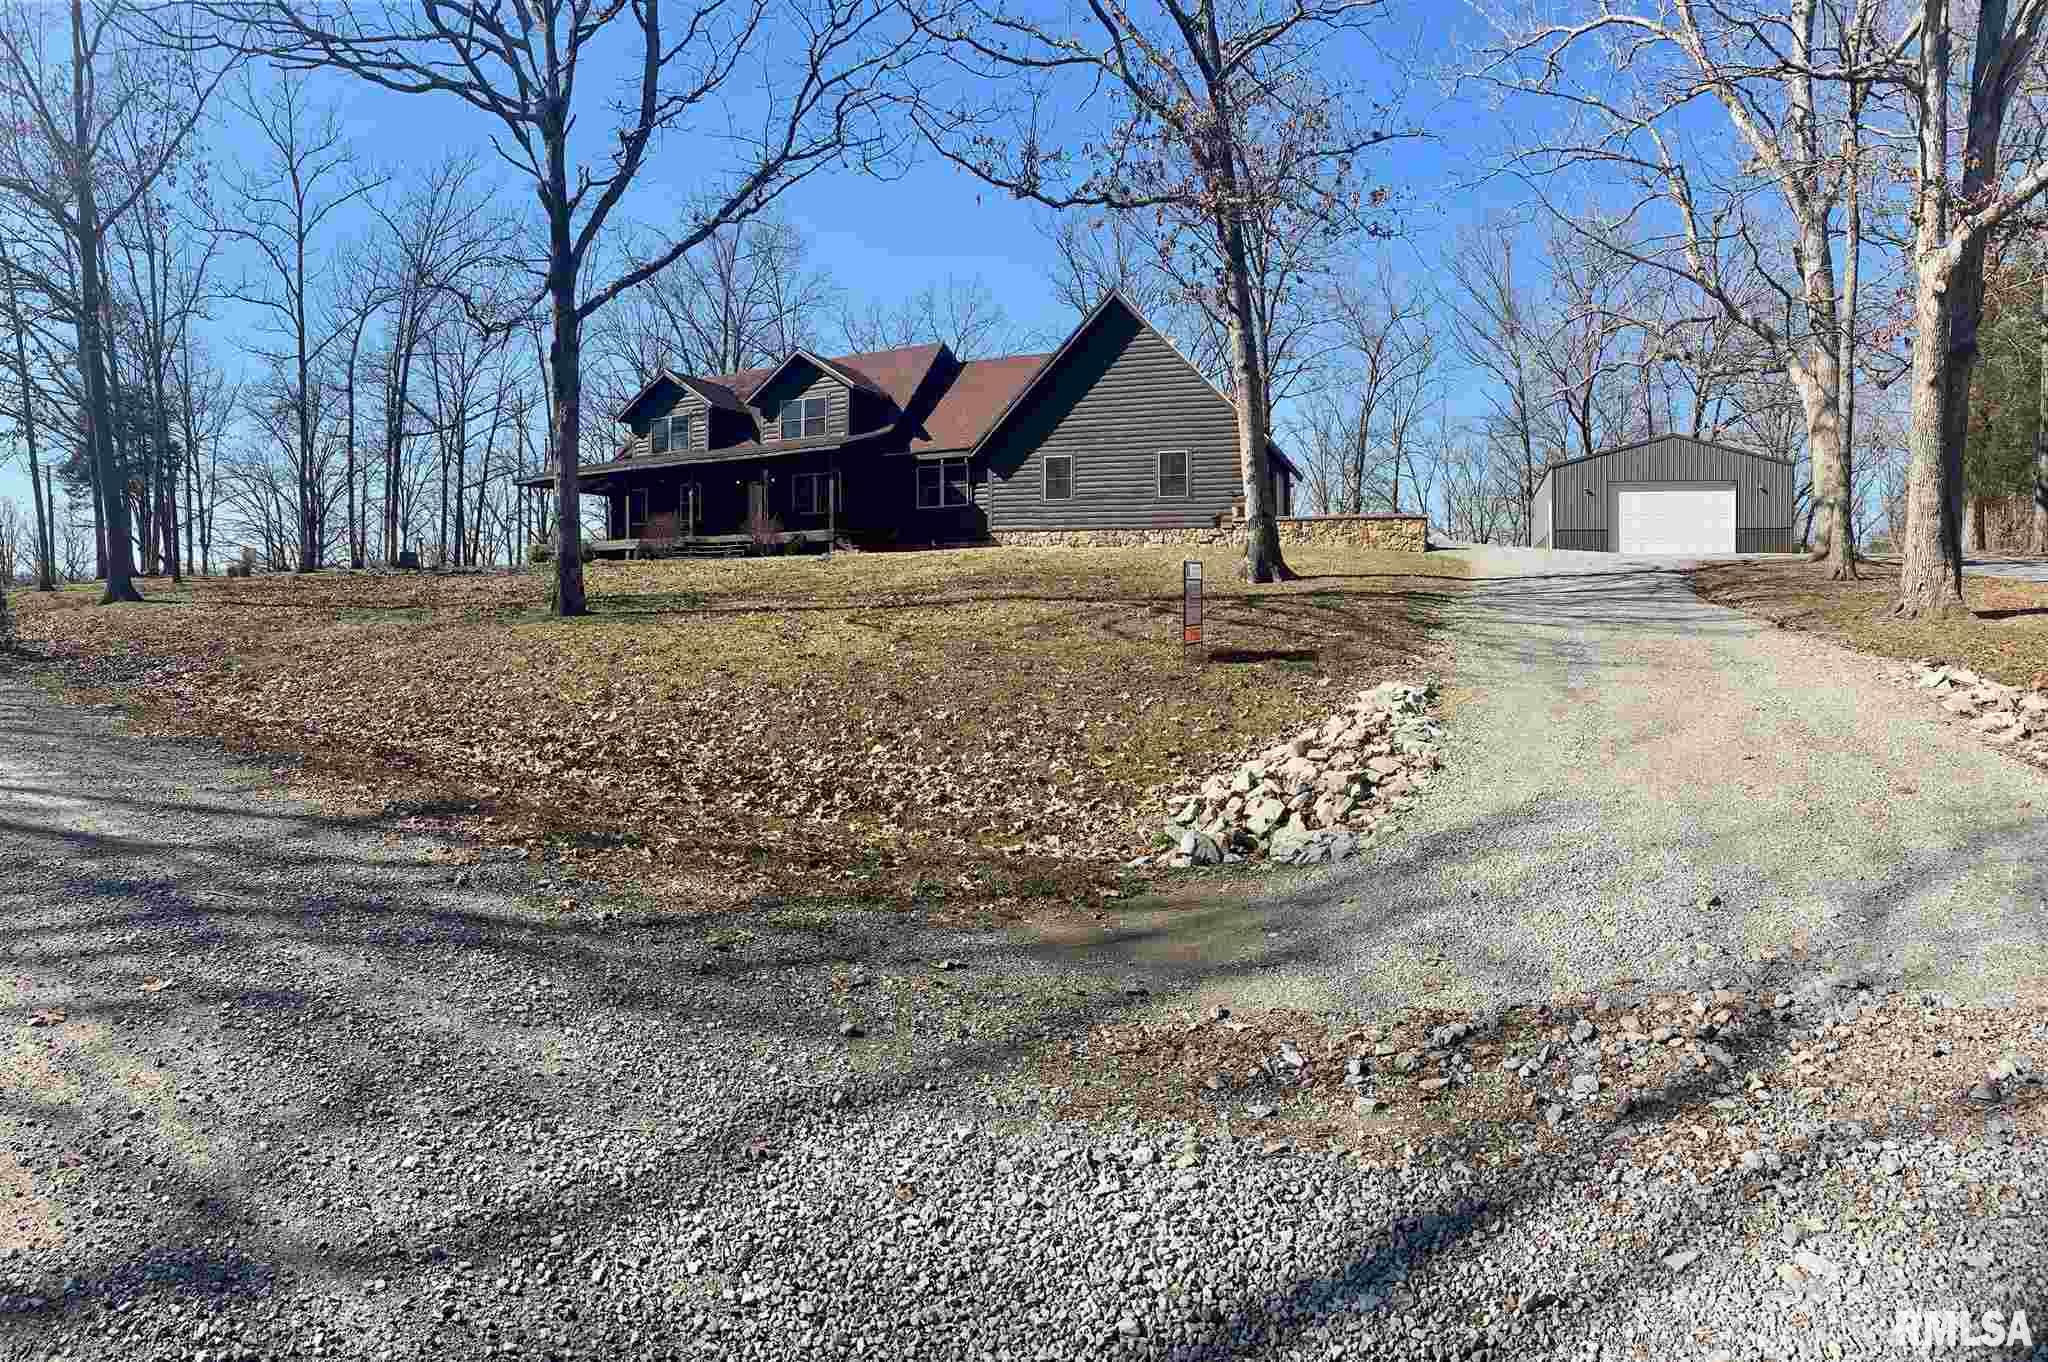 MLS#: Address: 485 Wagon Creek Loop Creal Springs